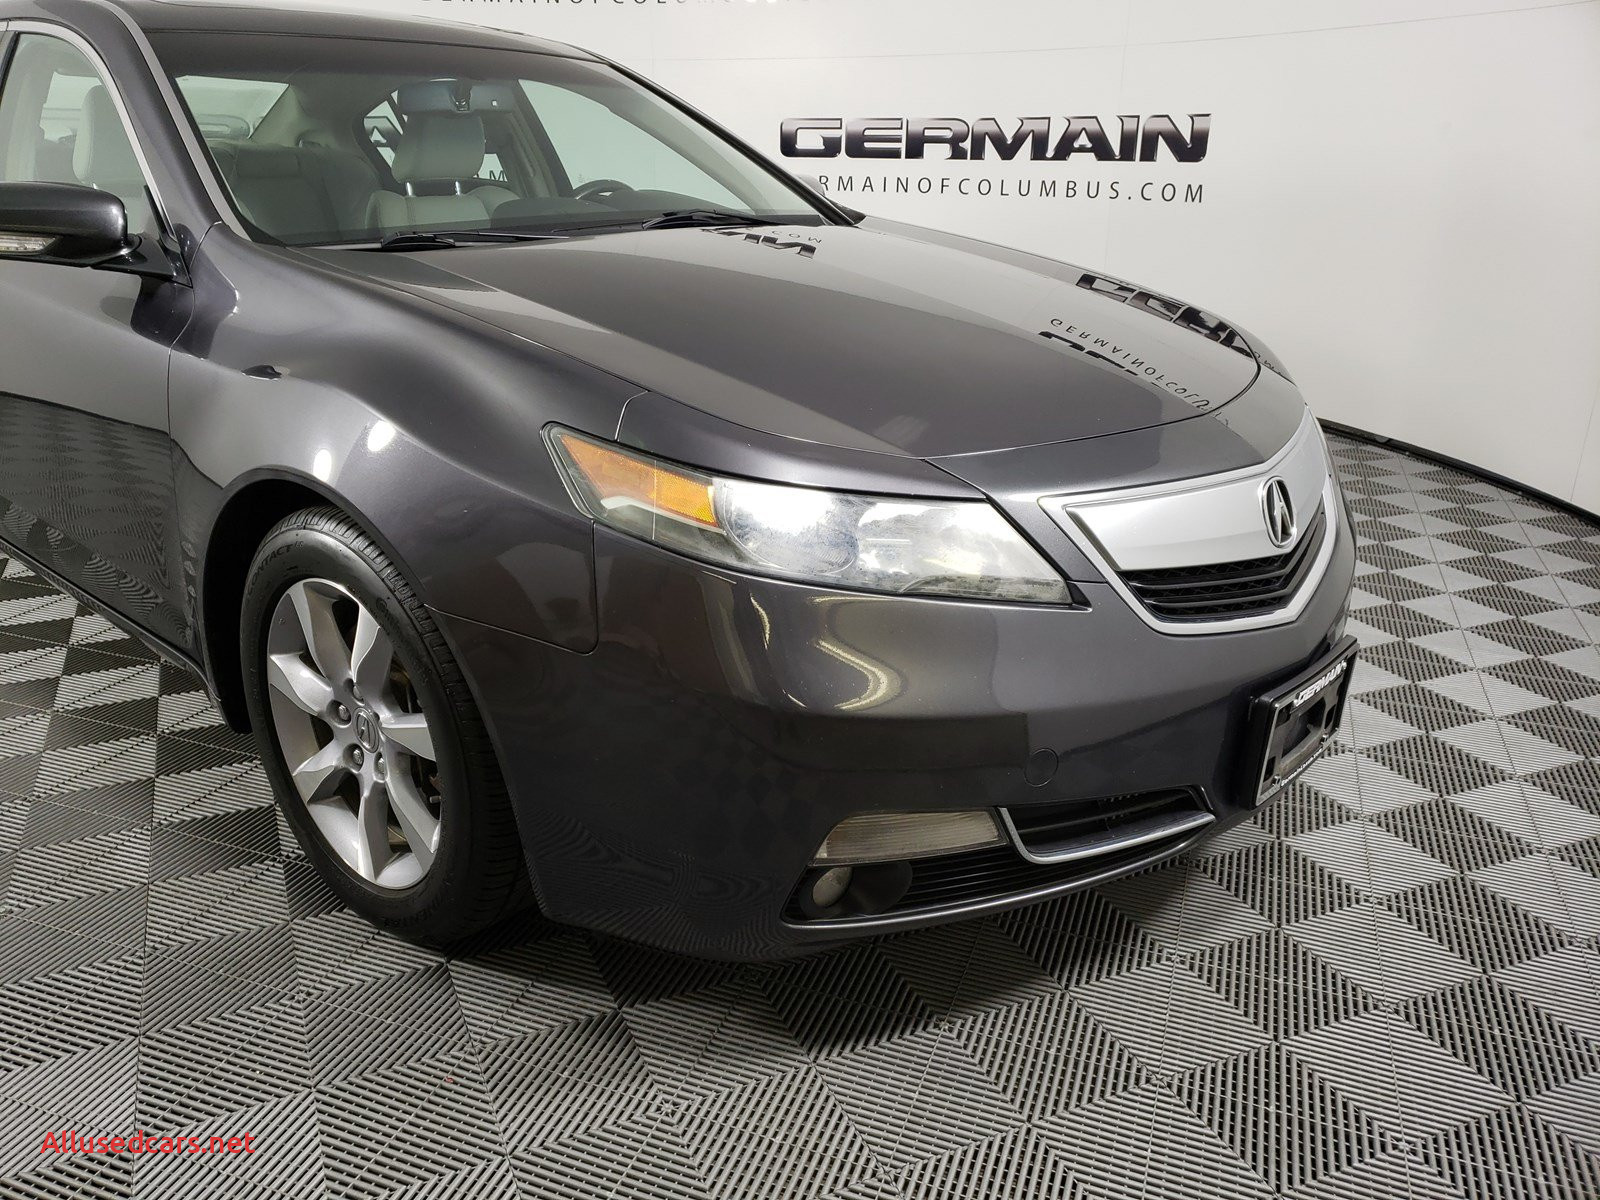 2009 Acura Tl Elegant Pre Owned 2012 Acura Tl Tech Auto with Navigation